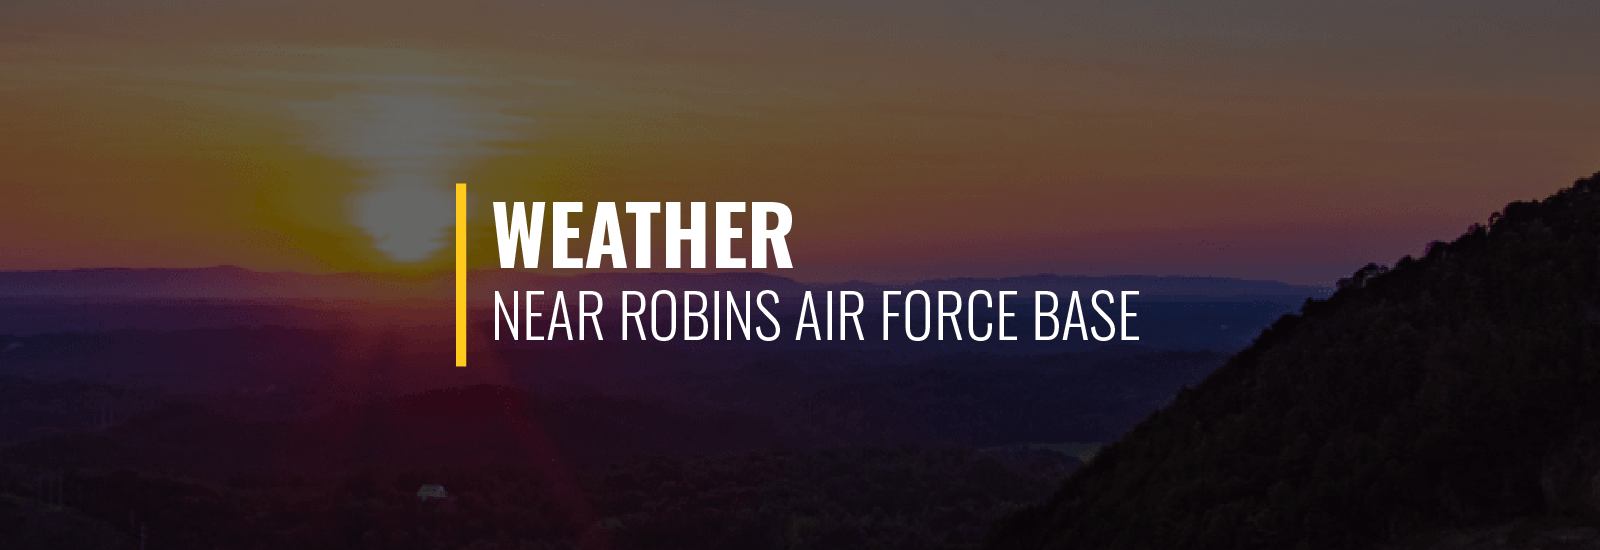 Robins AFB Weather